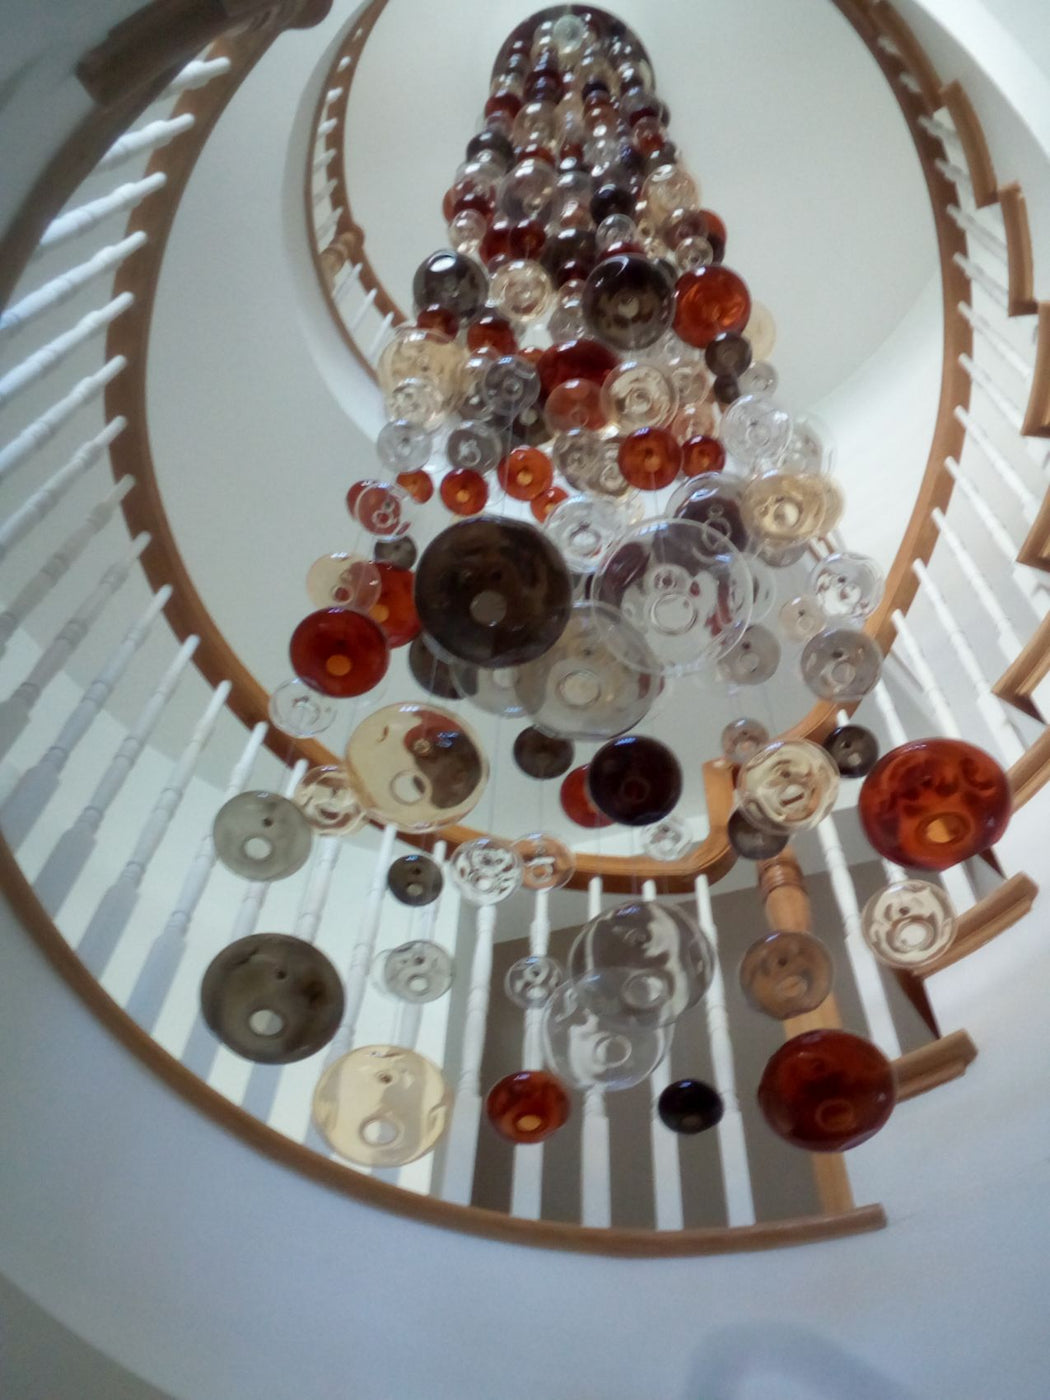 20 feet tall bespoke stairwell chandelier with colored glass bubbles